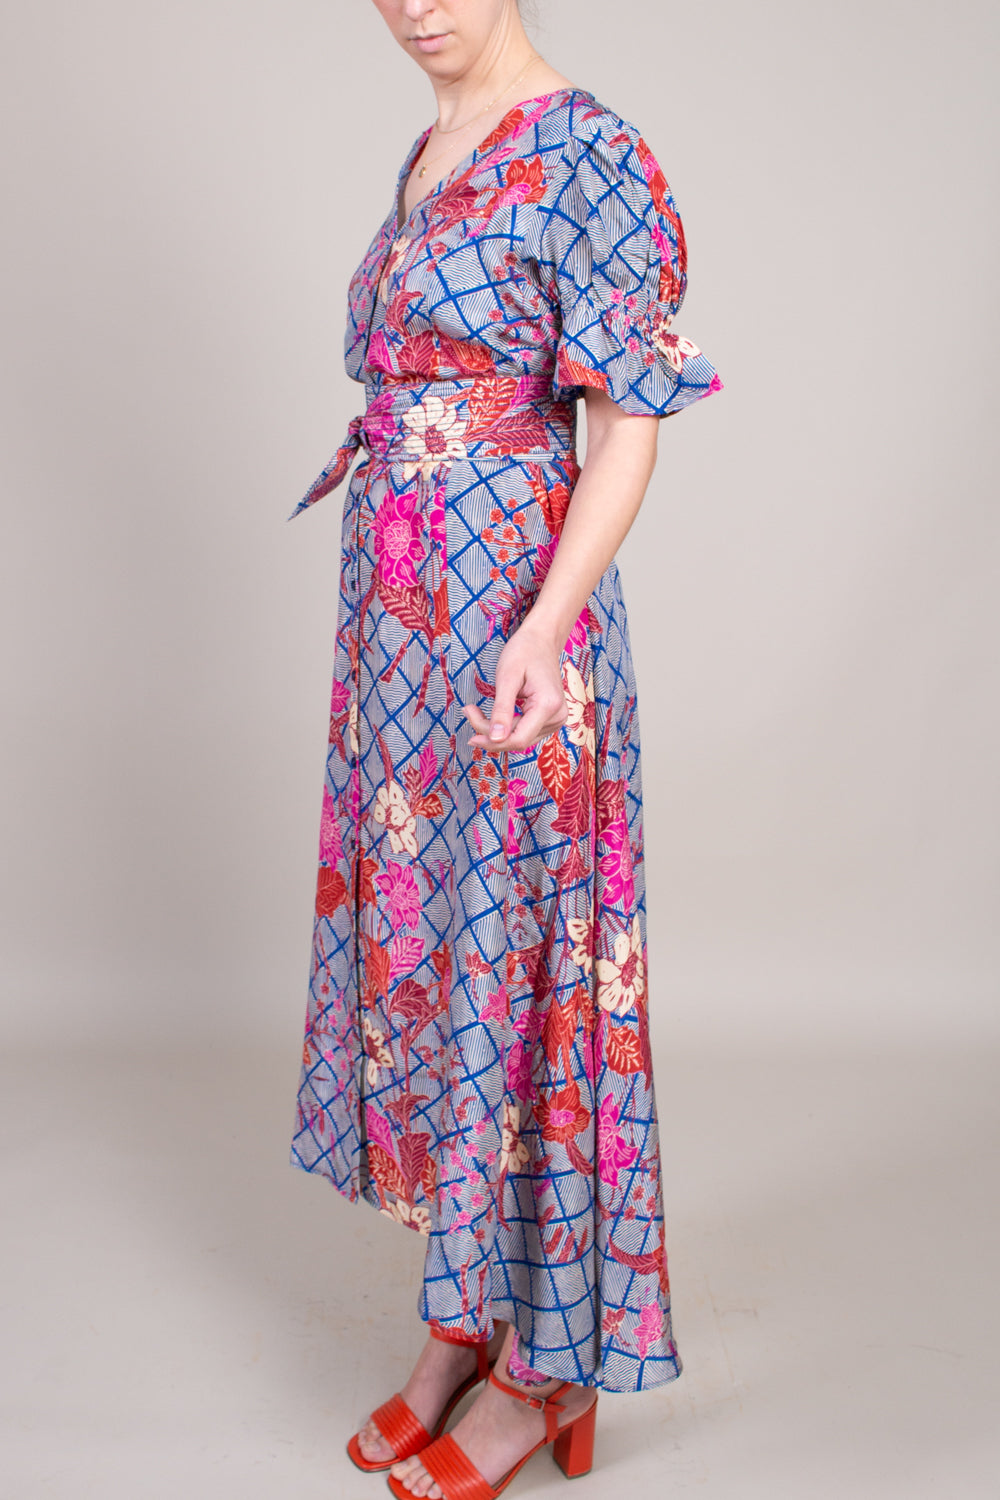 Apiece Apart Monterossa Dress in Indo Batik - Vert & Vogue